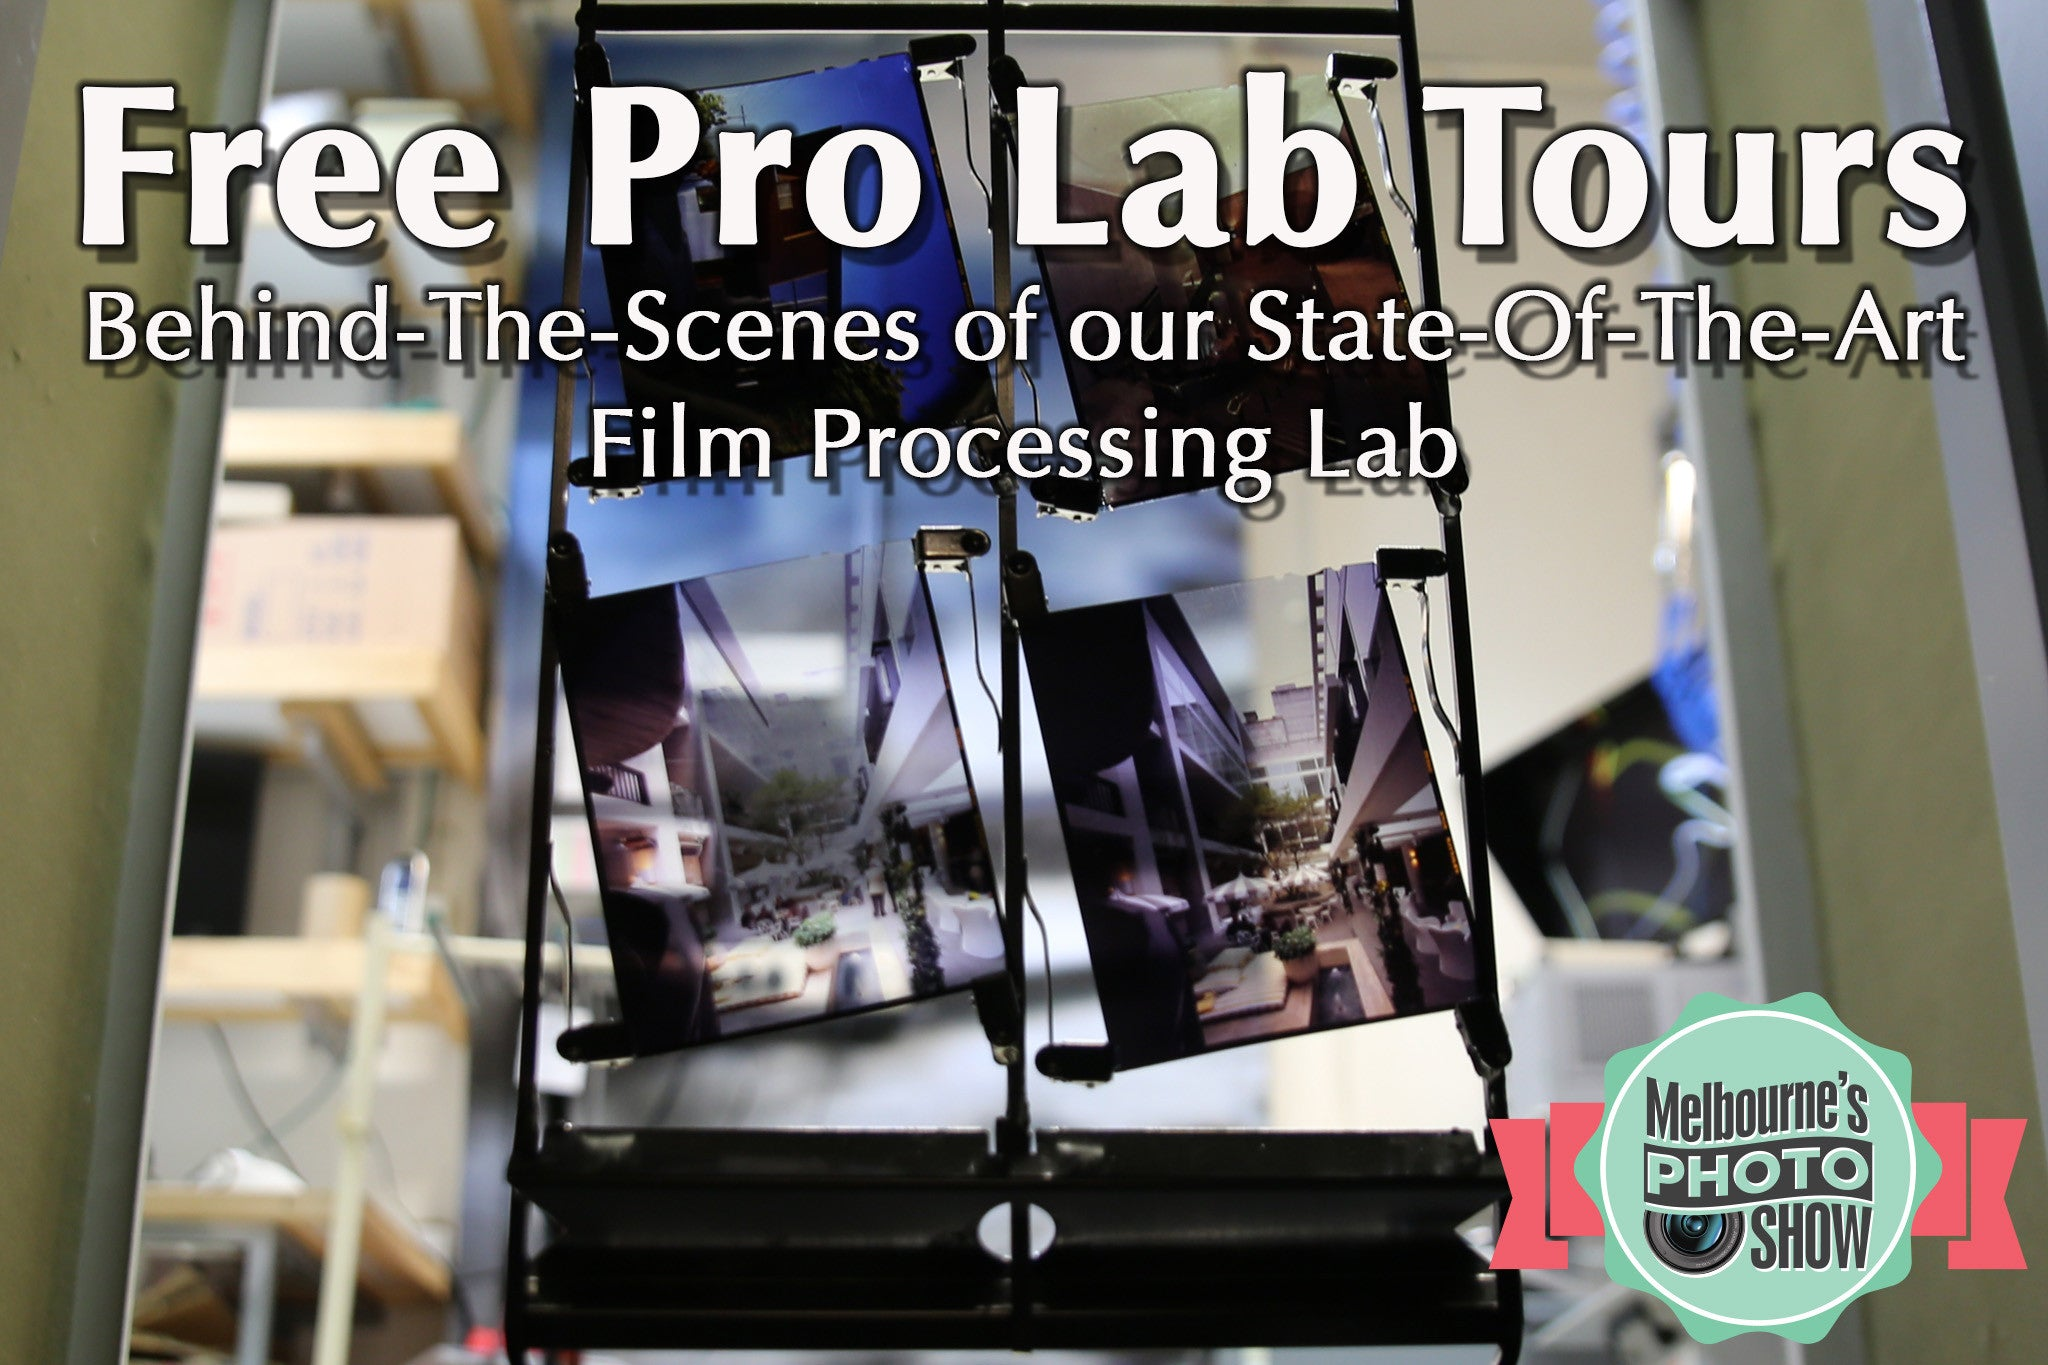 Free Pro Lab Tours - Behind-The-Scenes of our State-Of-The-Art Film Processing Lab - 2 Tours - 1pm & 2:30pm - Sat. 8th April  - Limited Numbers